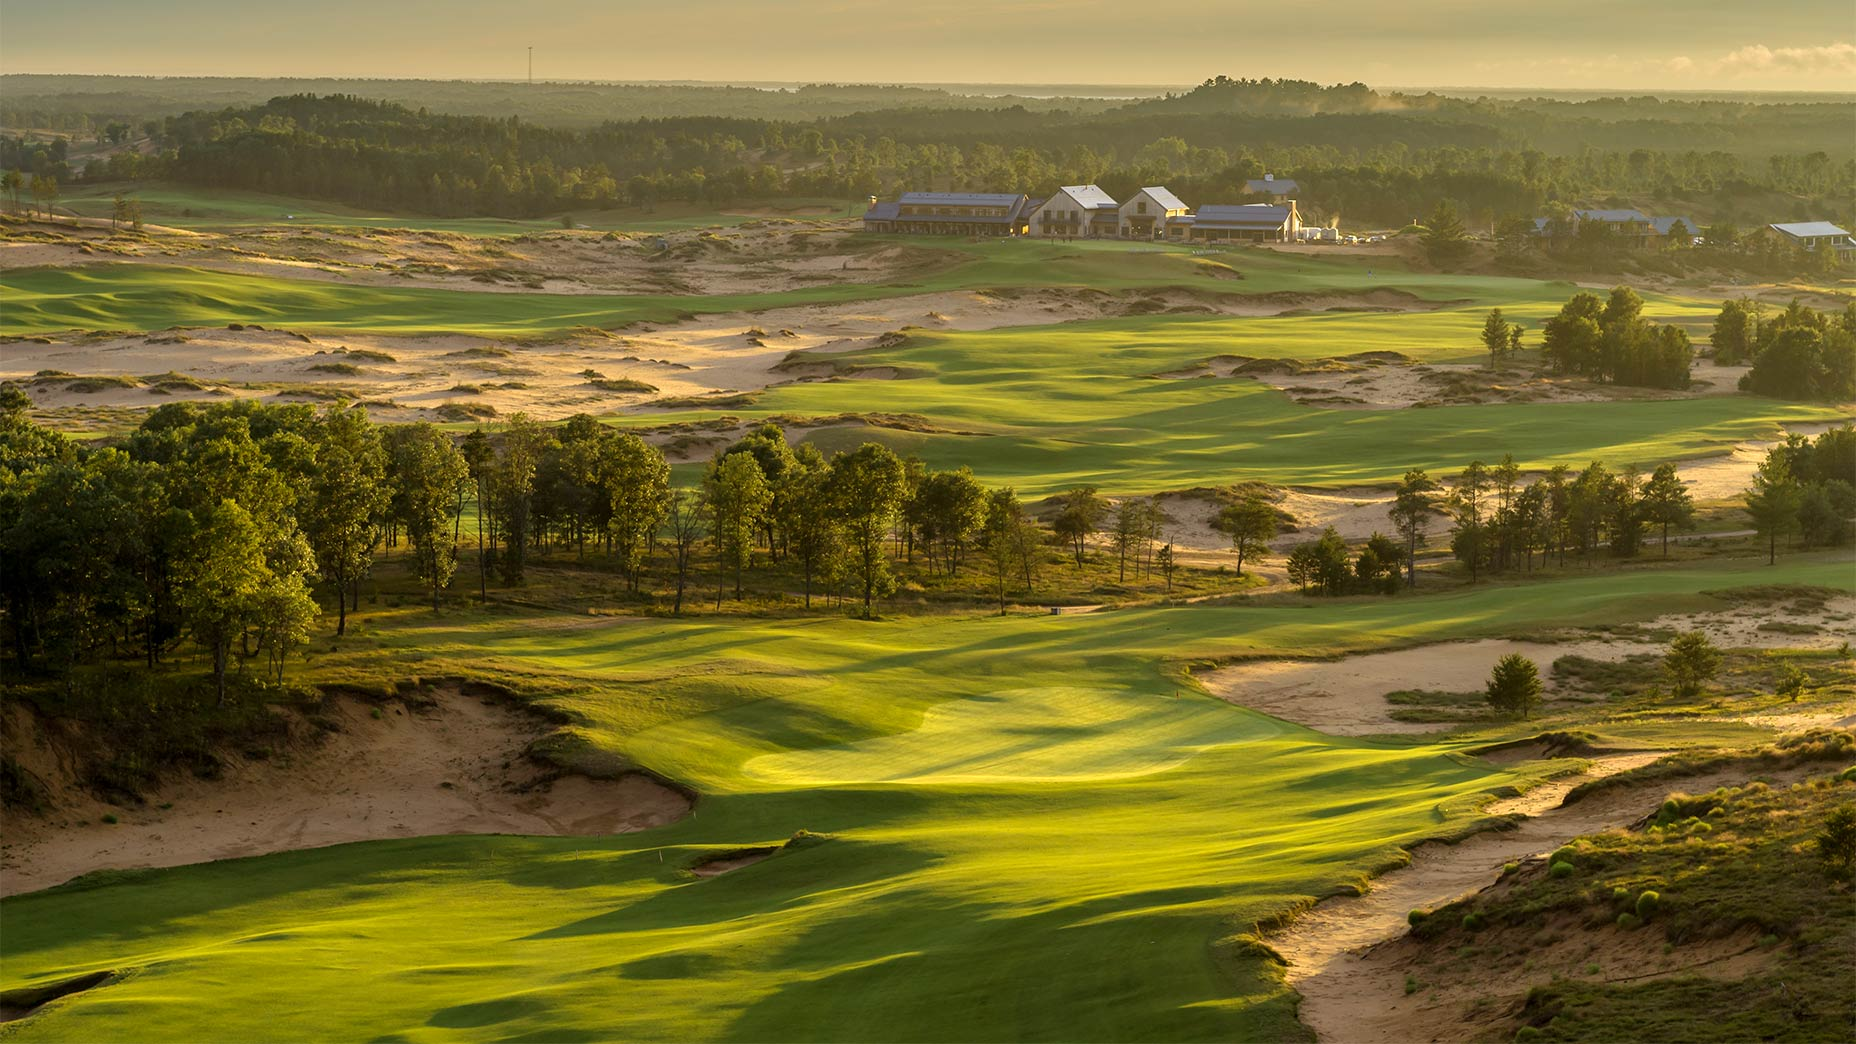 The 14th hole at Mammoth Dunes in Sand Valley.